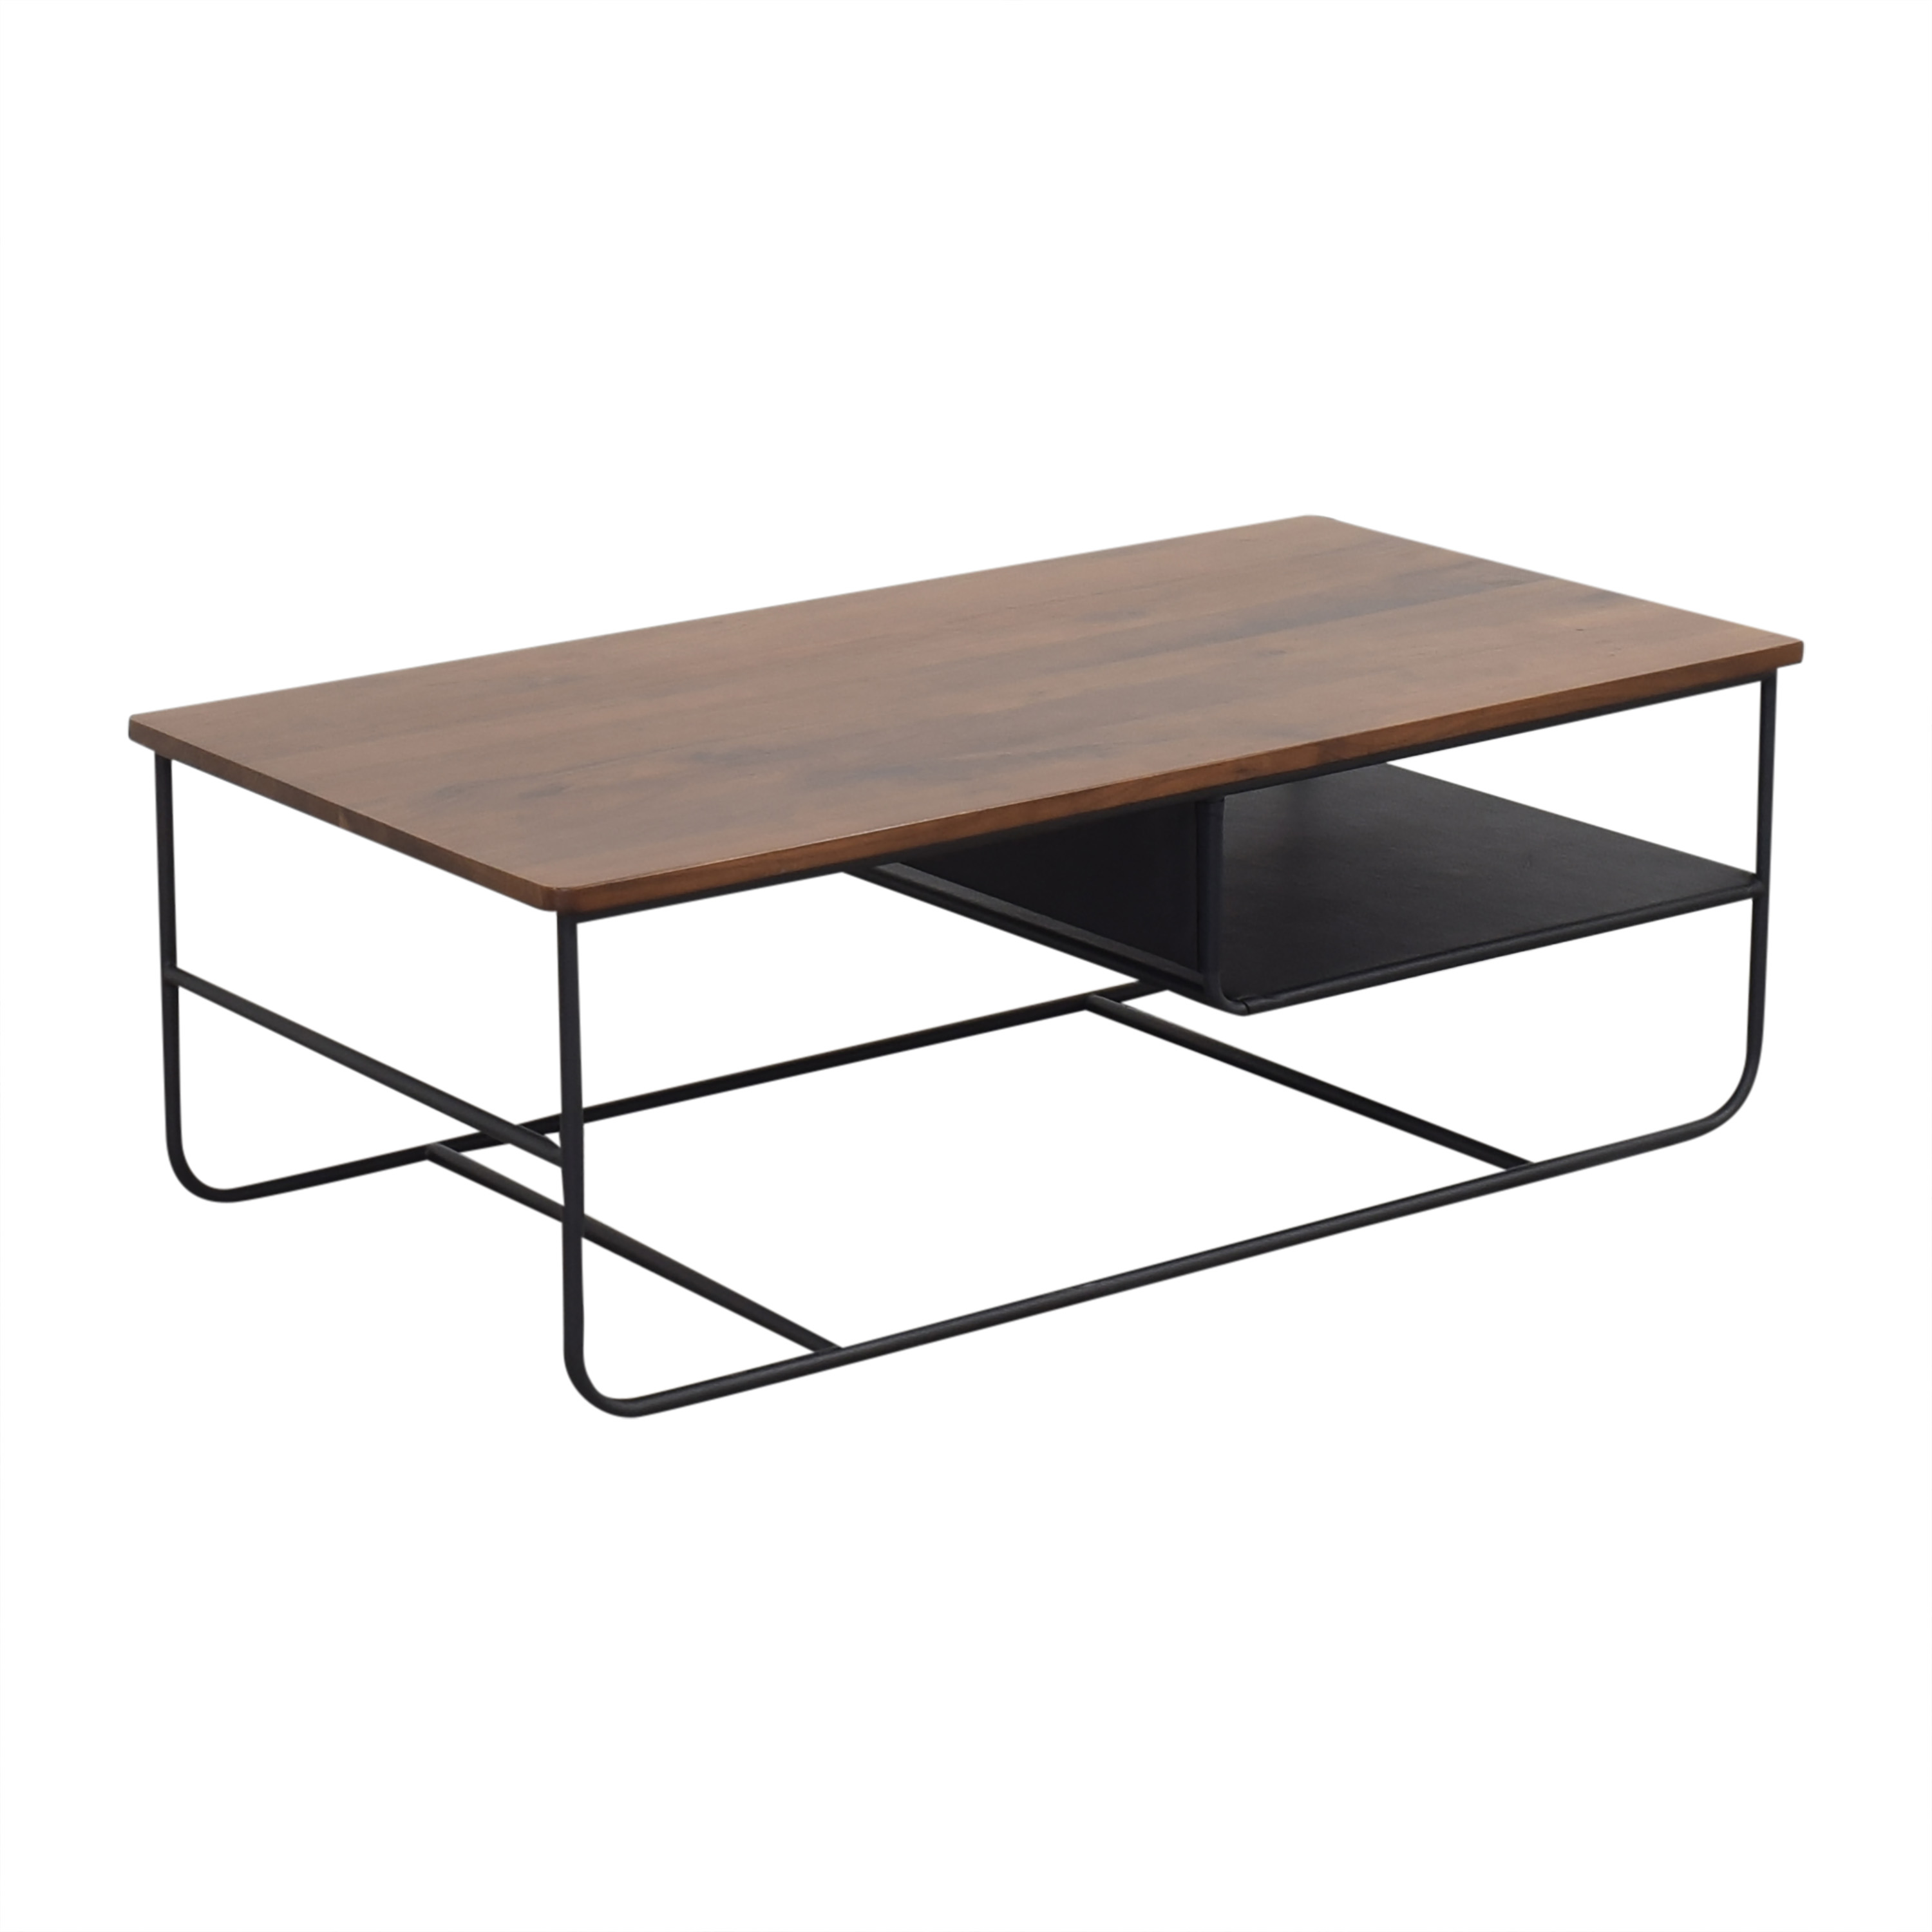 Article Article Maggi Coffee Table brown & black